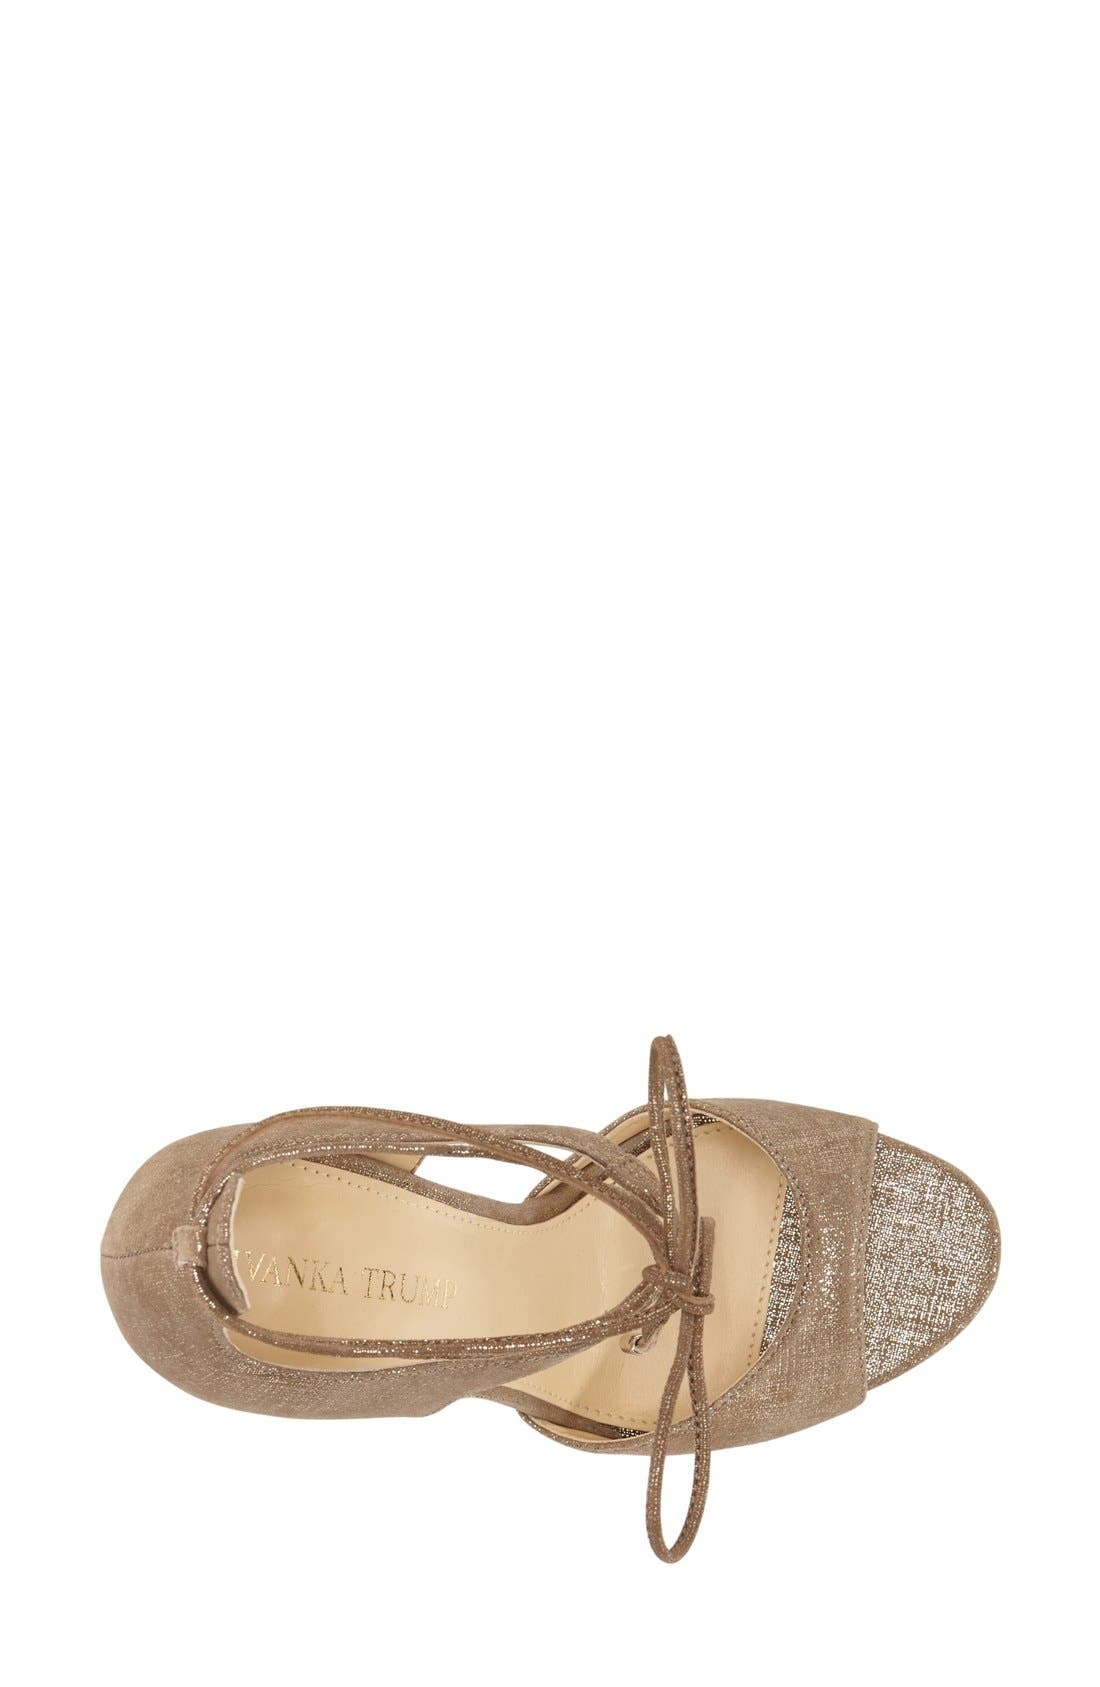 Alternate Image 3  - Ivanka Trump 'Holidae' d'Orsay Sandal (Women)